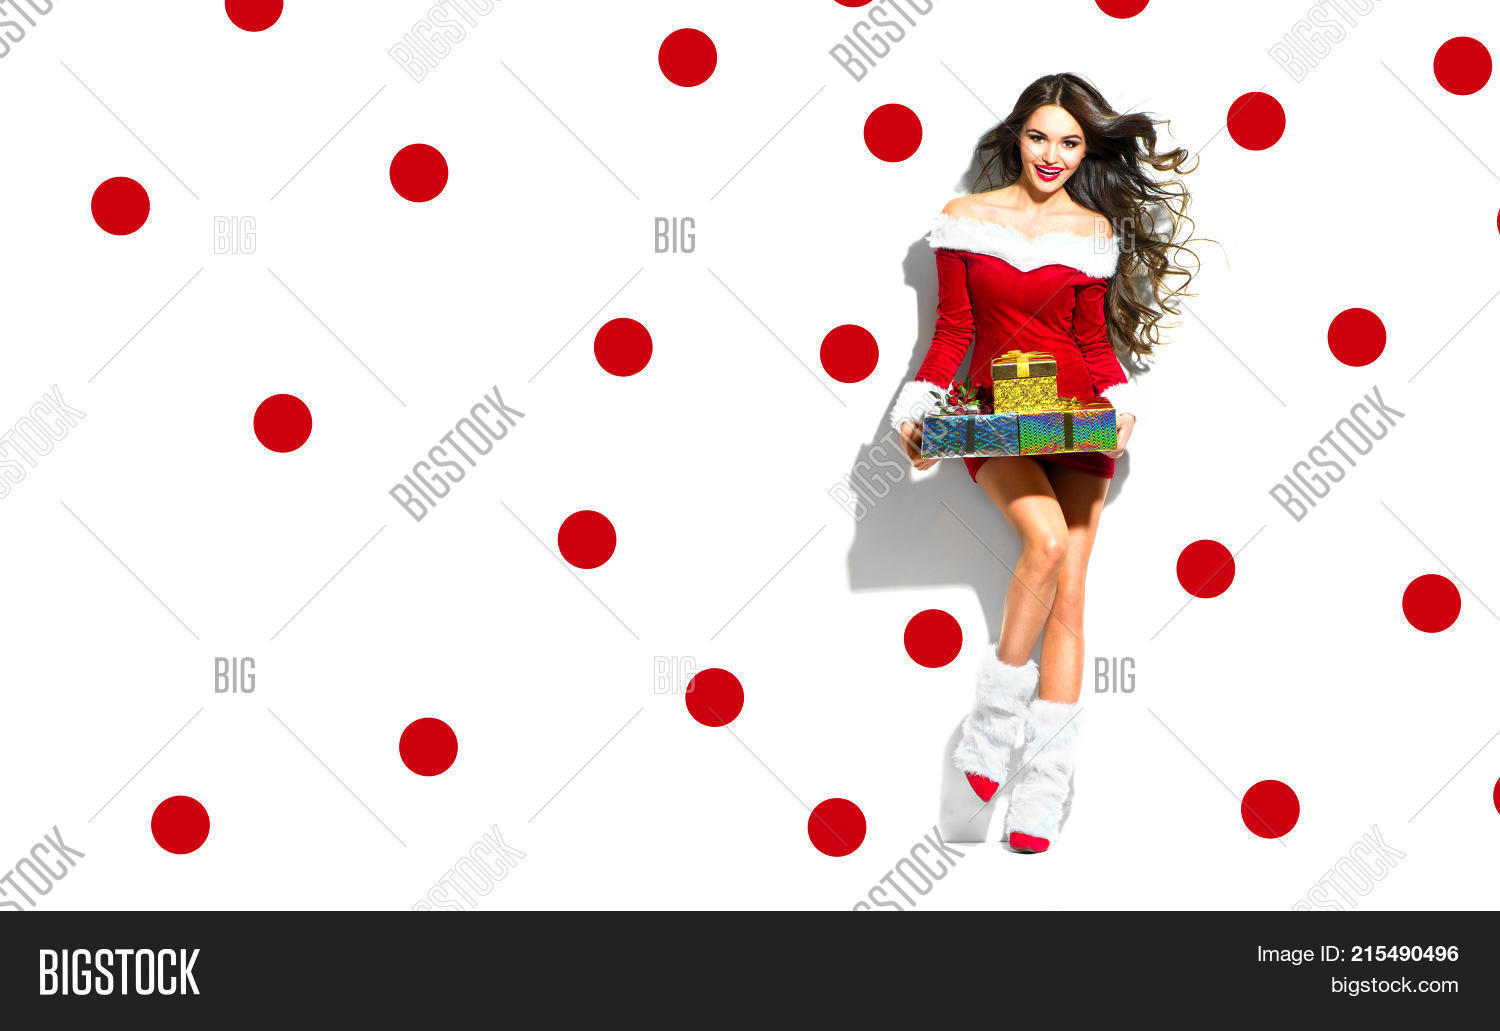 5a0c4956de Beauty Christmas fashion model girl with Xmas gift boxes